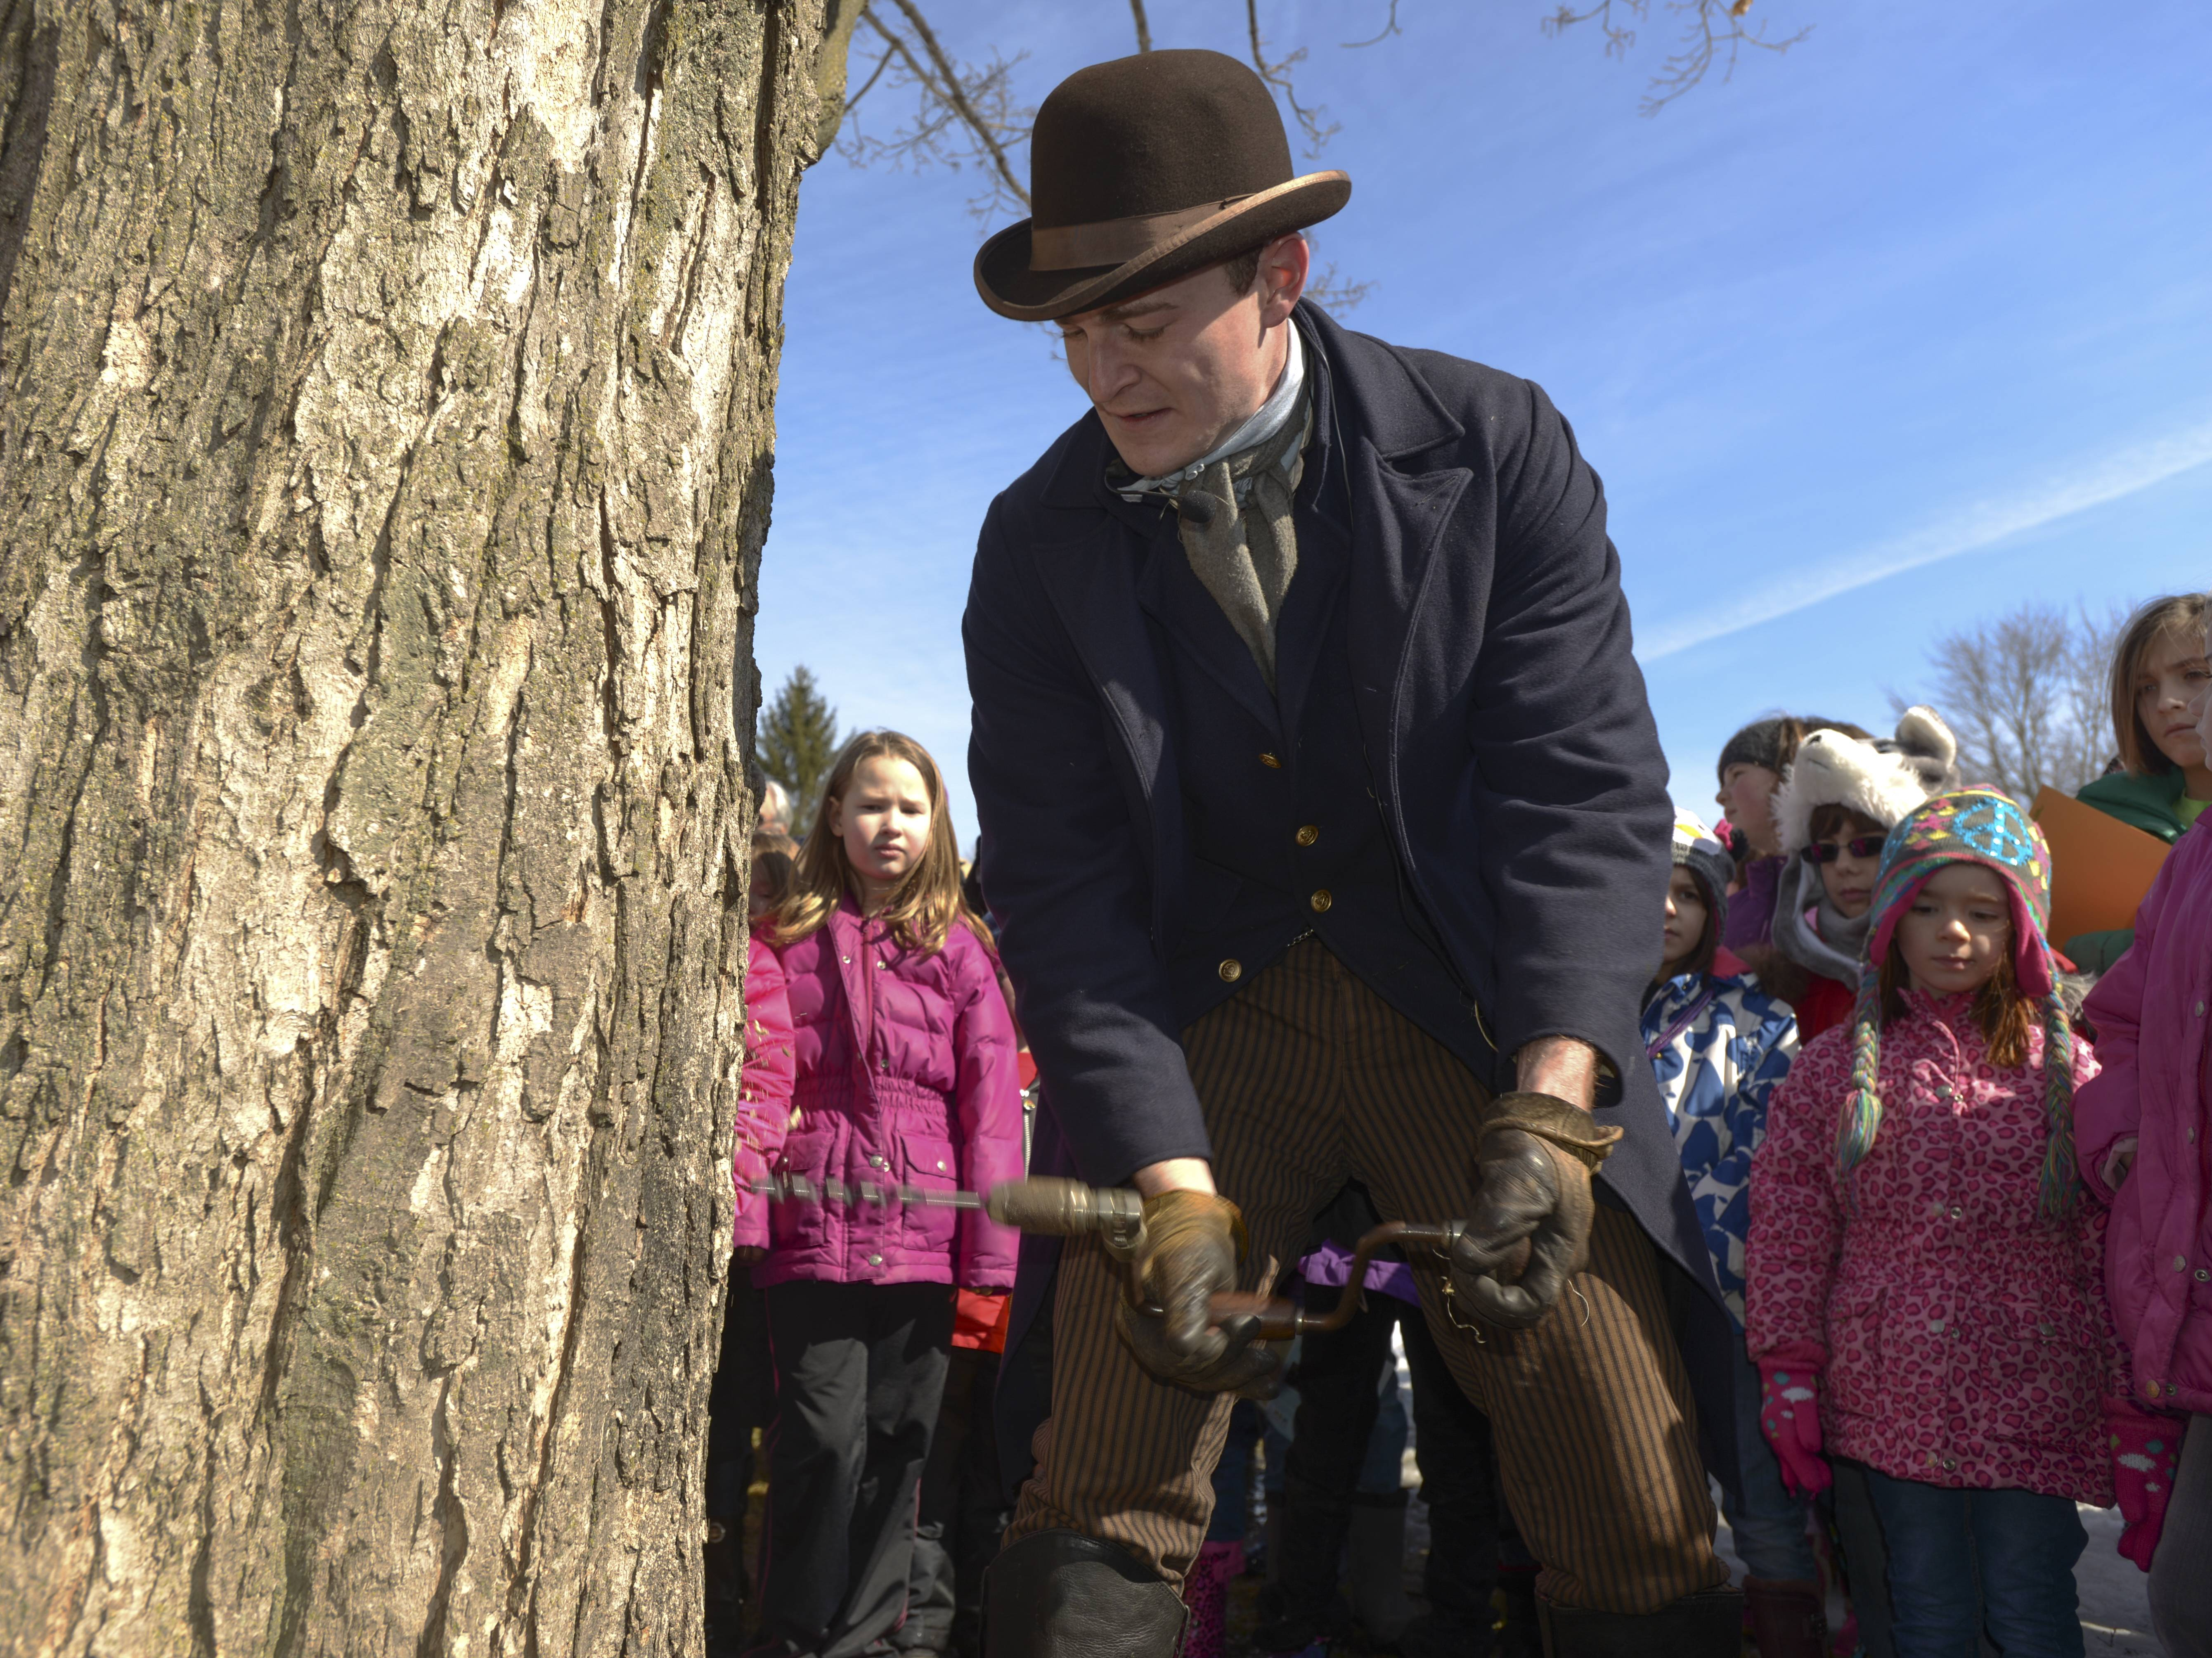 Justin Stech, an educator at the Naper Settlement Museum in Naperville, demonstrates how to tap a maple tree to gather sap to make it into maple syrup. Dozens visited the settlement Sunday for its annual Maple Sugaring Days.